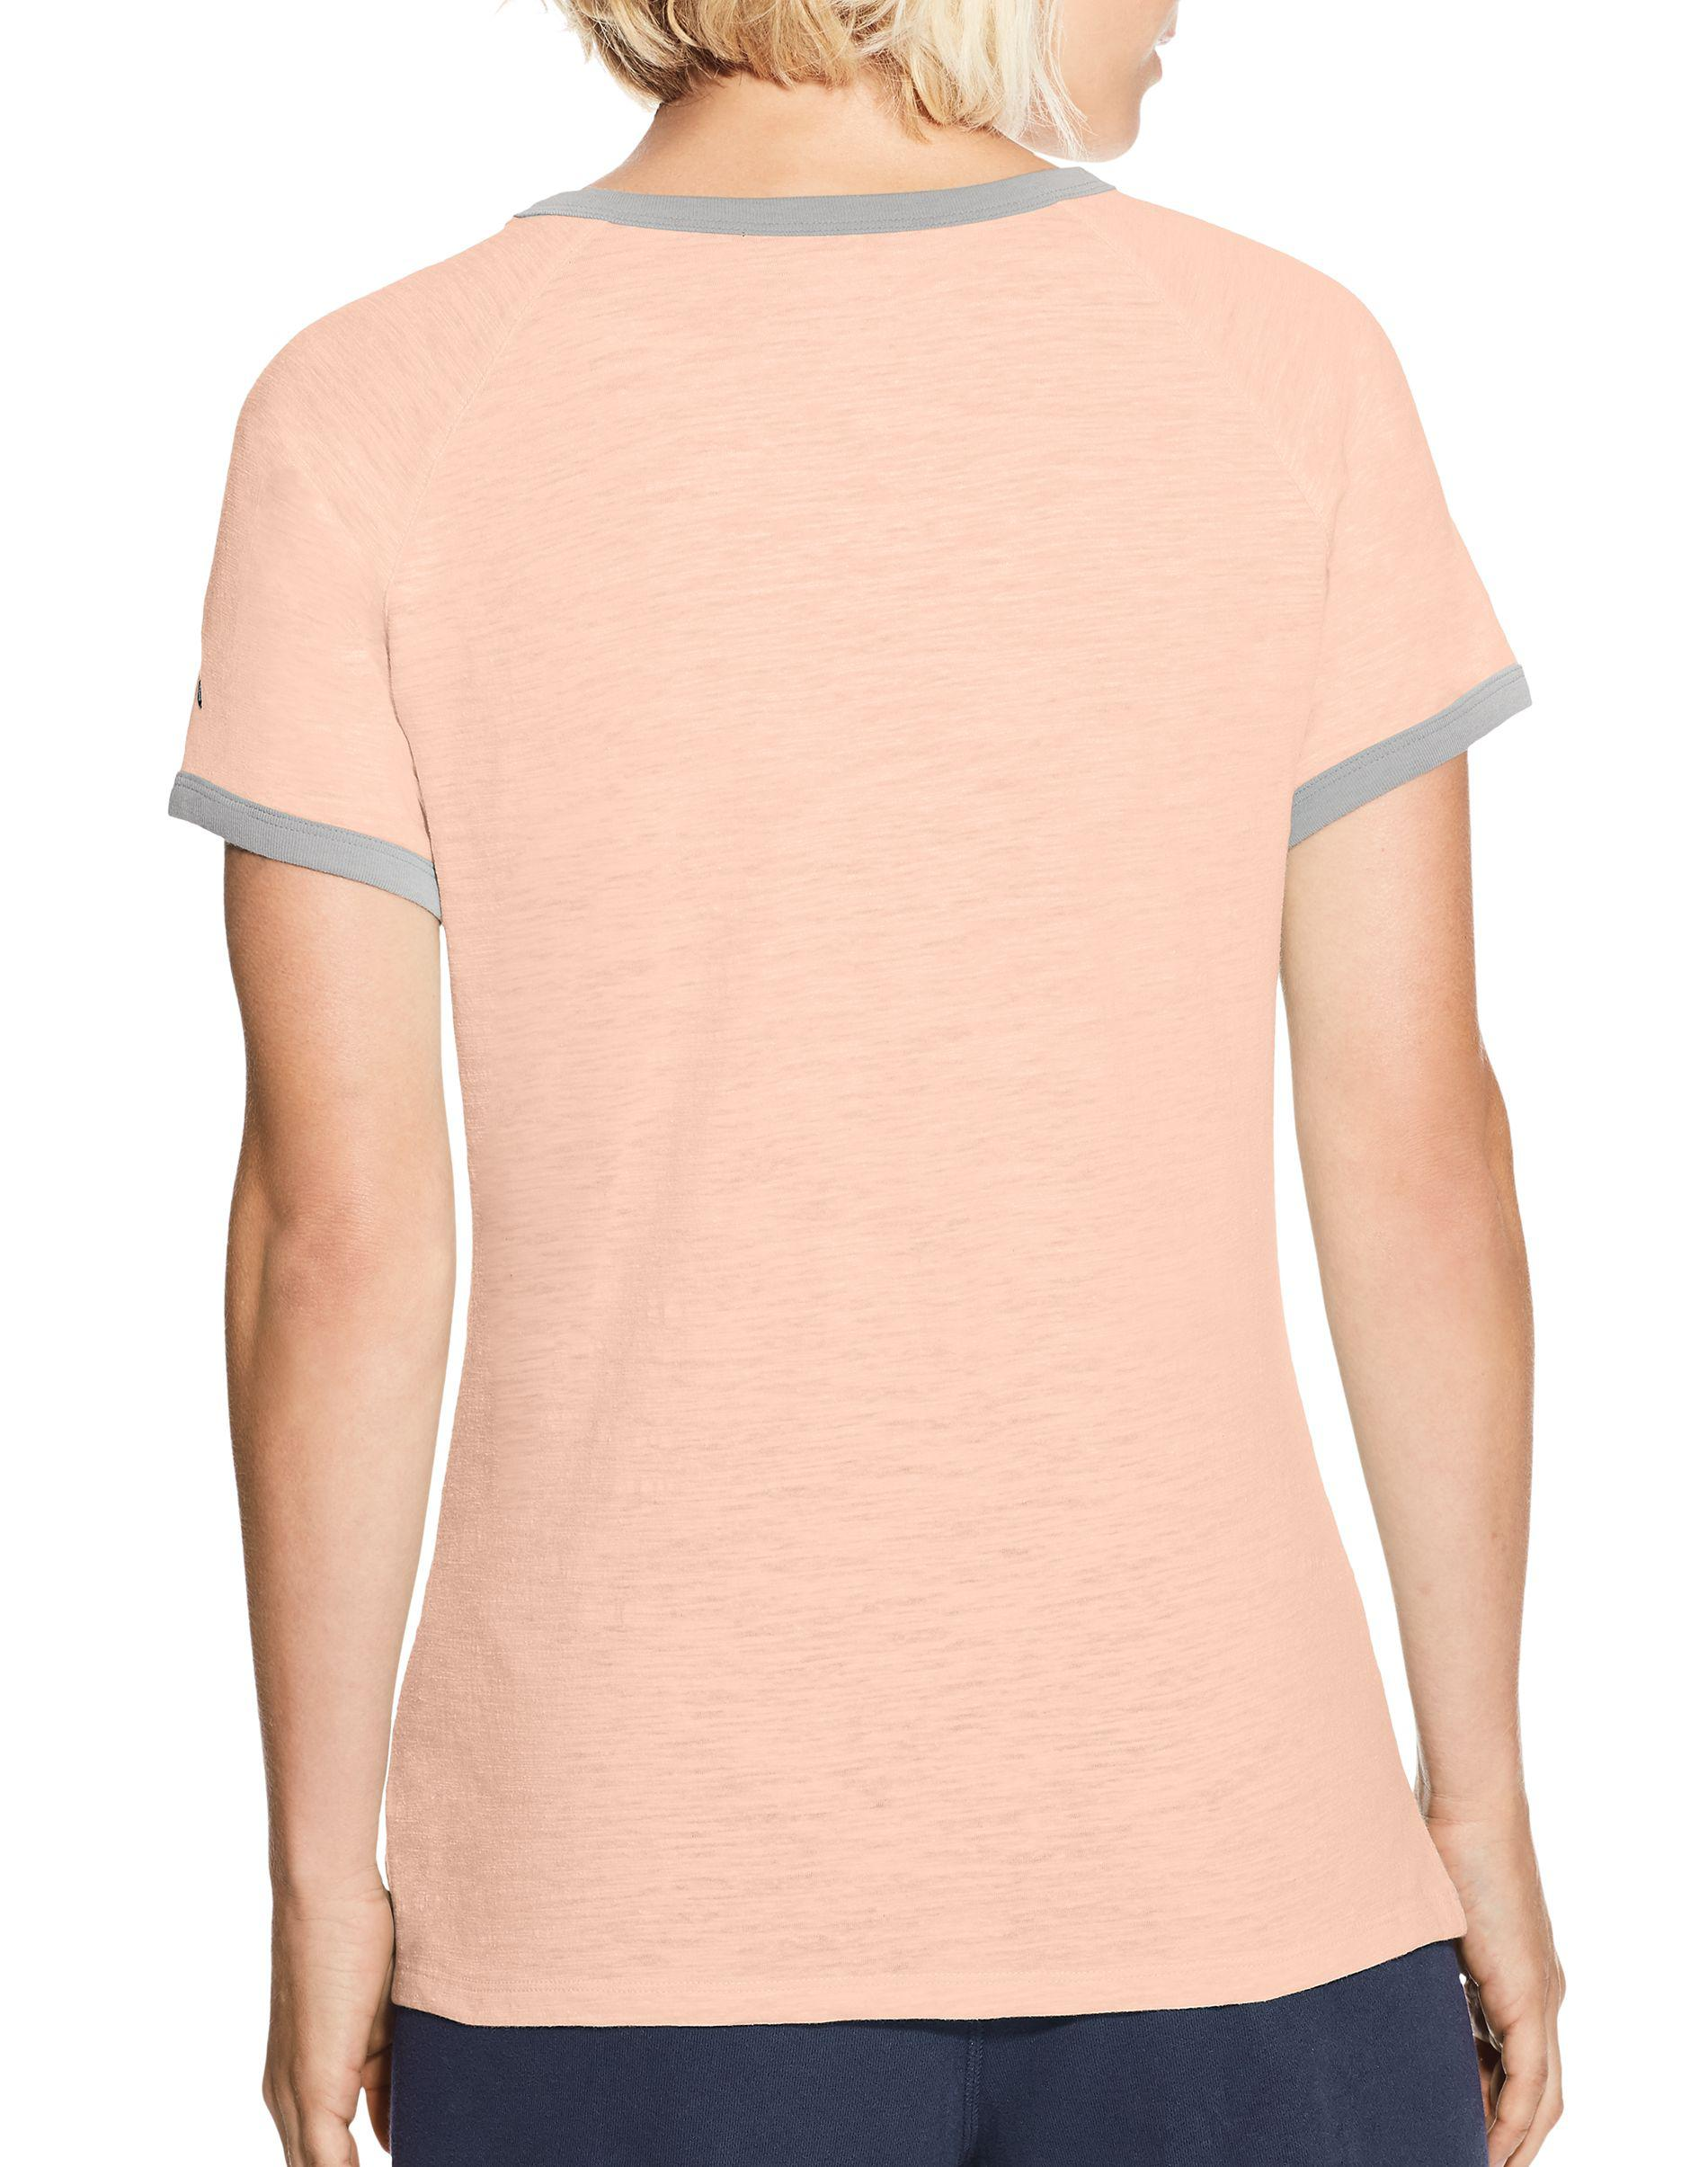 0386ba5bd25c Champion Heritage Ringer Tee, Phys Ed Dept. in Pink - Lyst